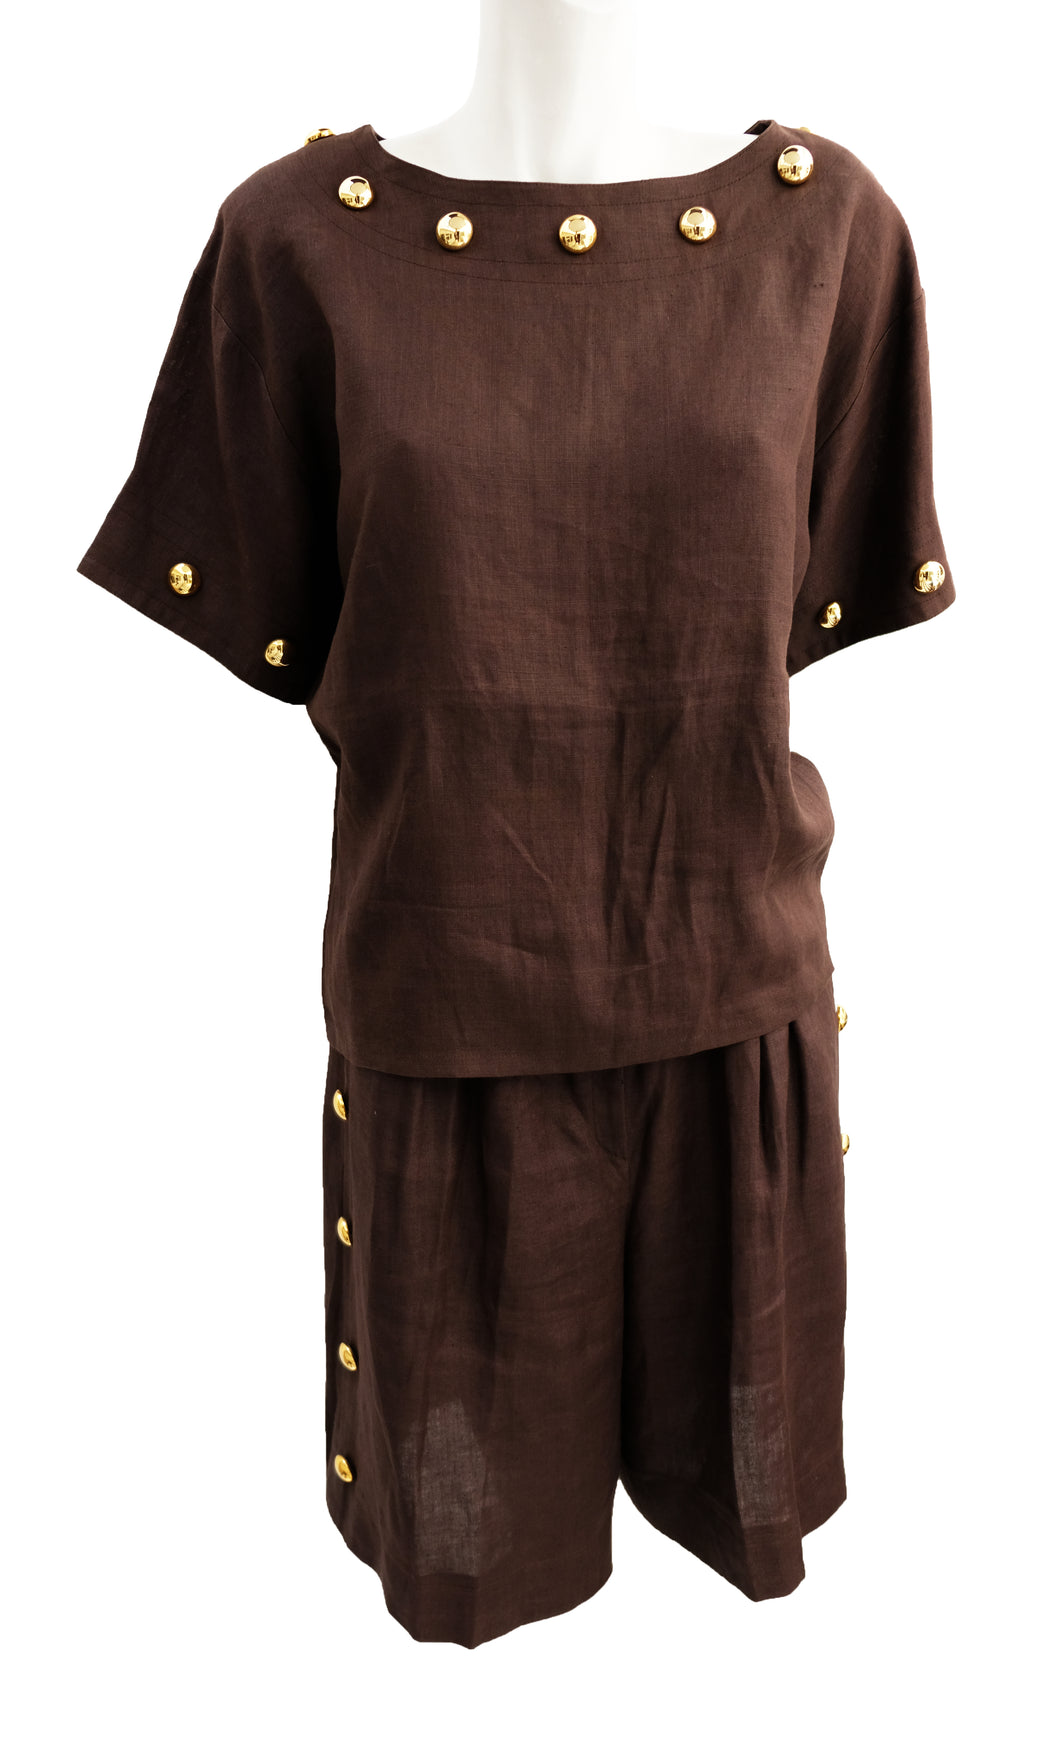 Givenchy Vintage 2 Piece Shorts Suit in Brown Linen with Gold Buttons, UK10-12